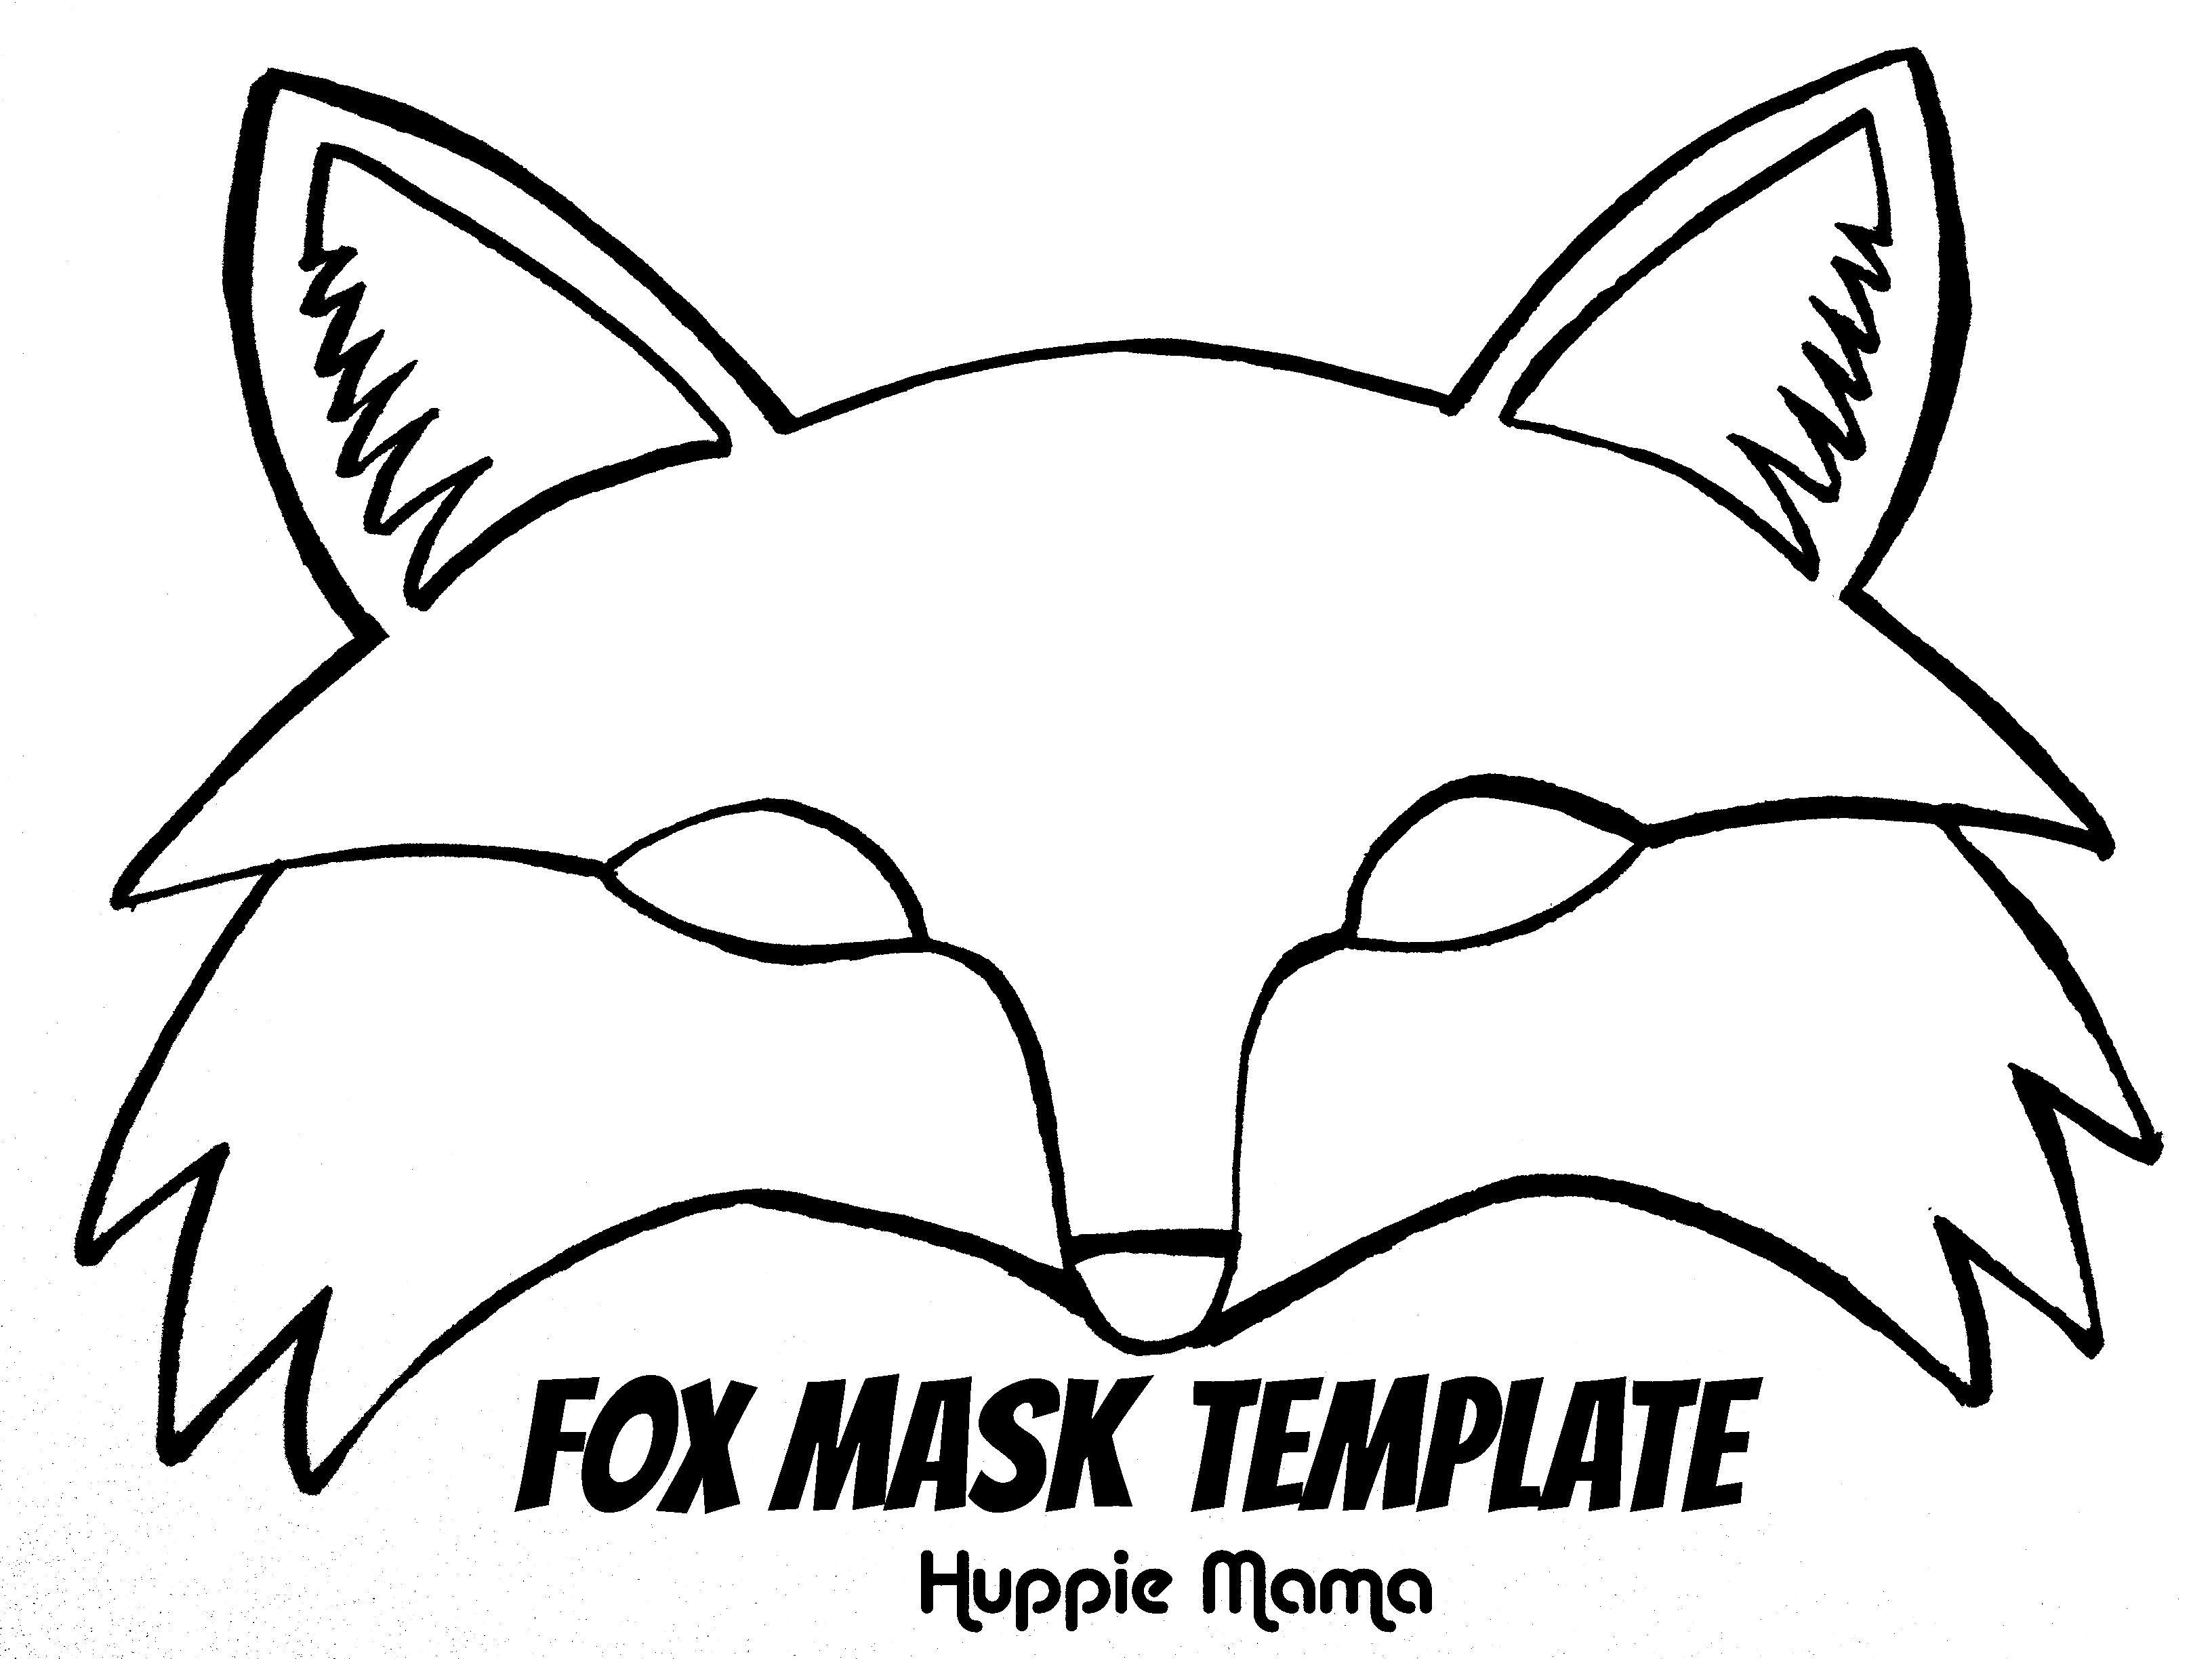 Fox template fox mask template foxy fox pinterest for Fantastic mr fox mask template